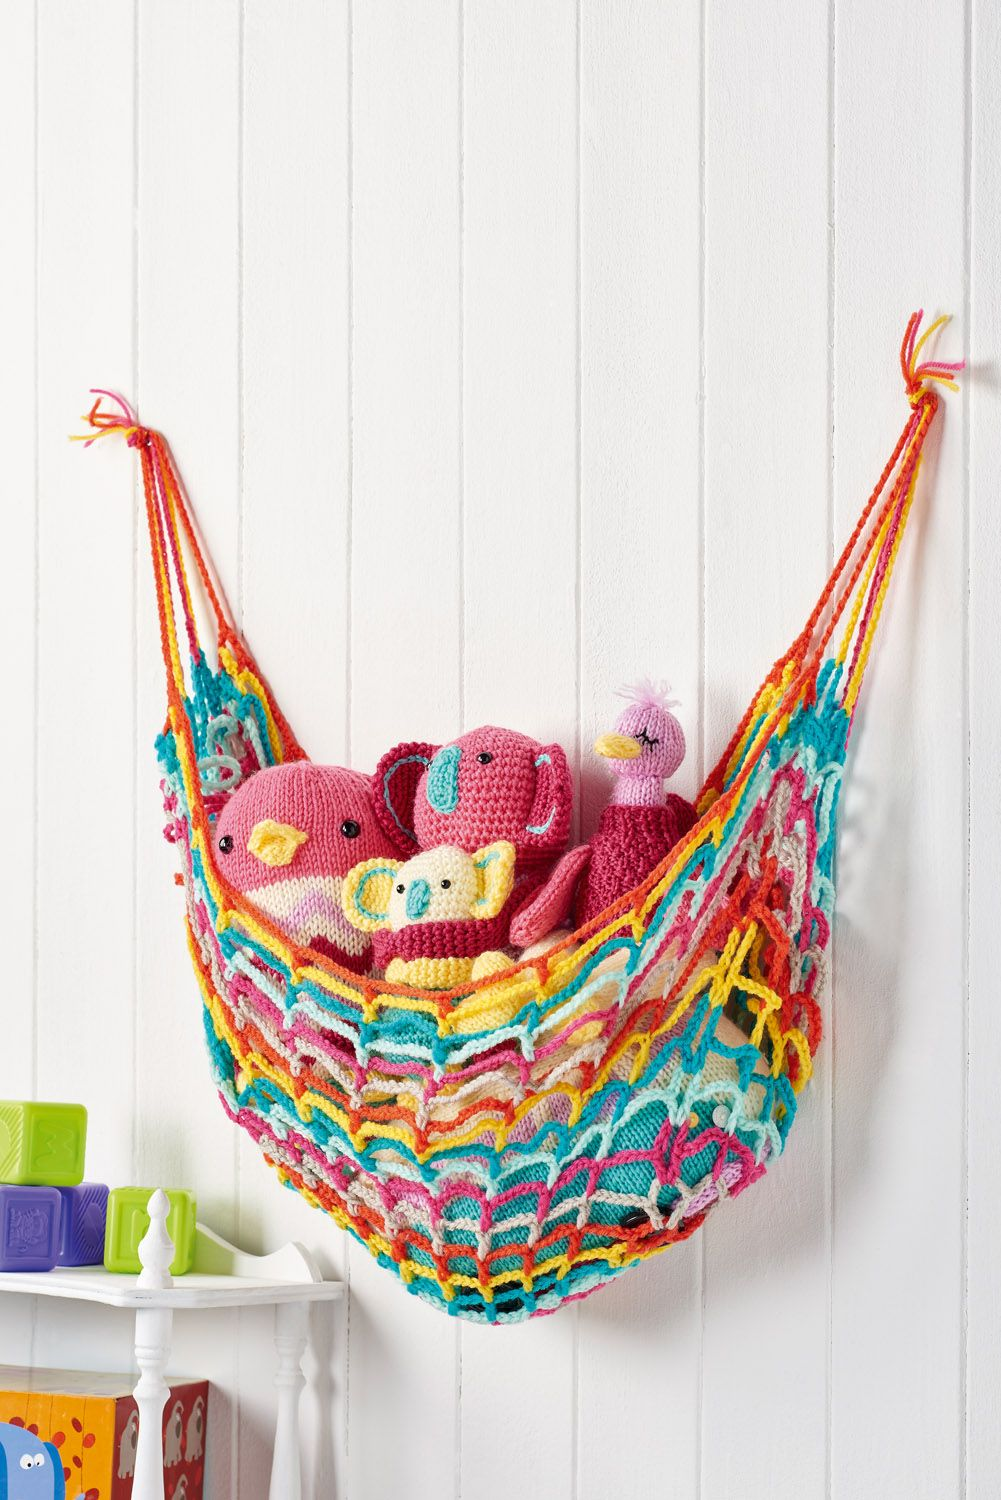 Toy hammock lets get crafting issue 91 image cliqq patterns bankloansurffo Image collections